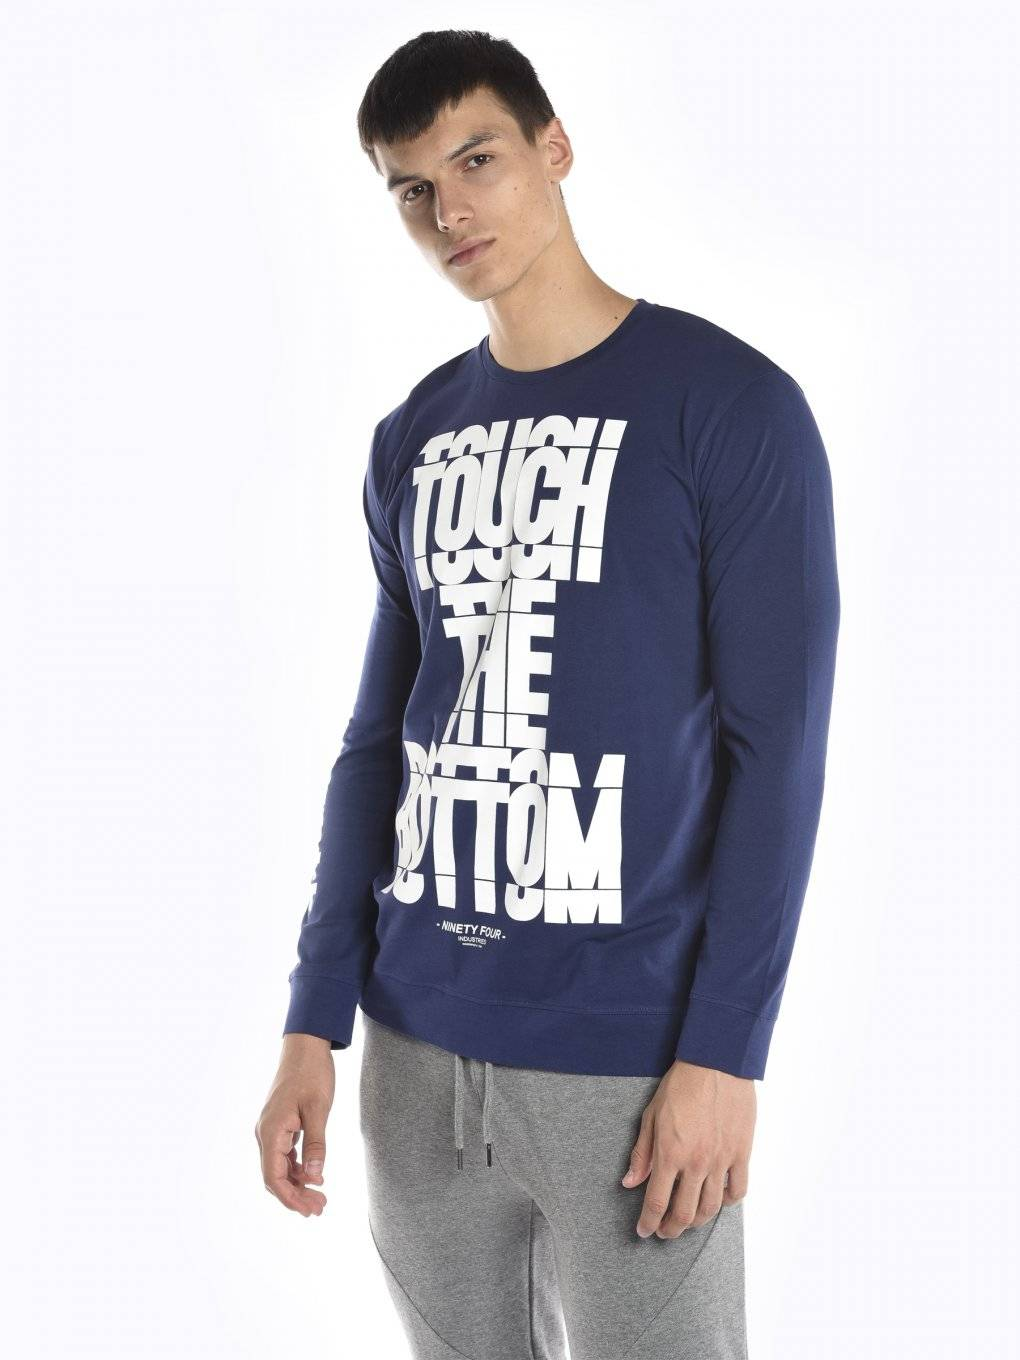 Long sleeve t-shirt with message print